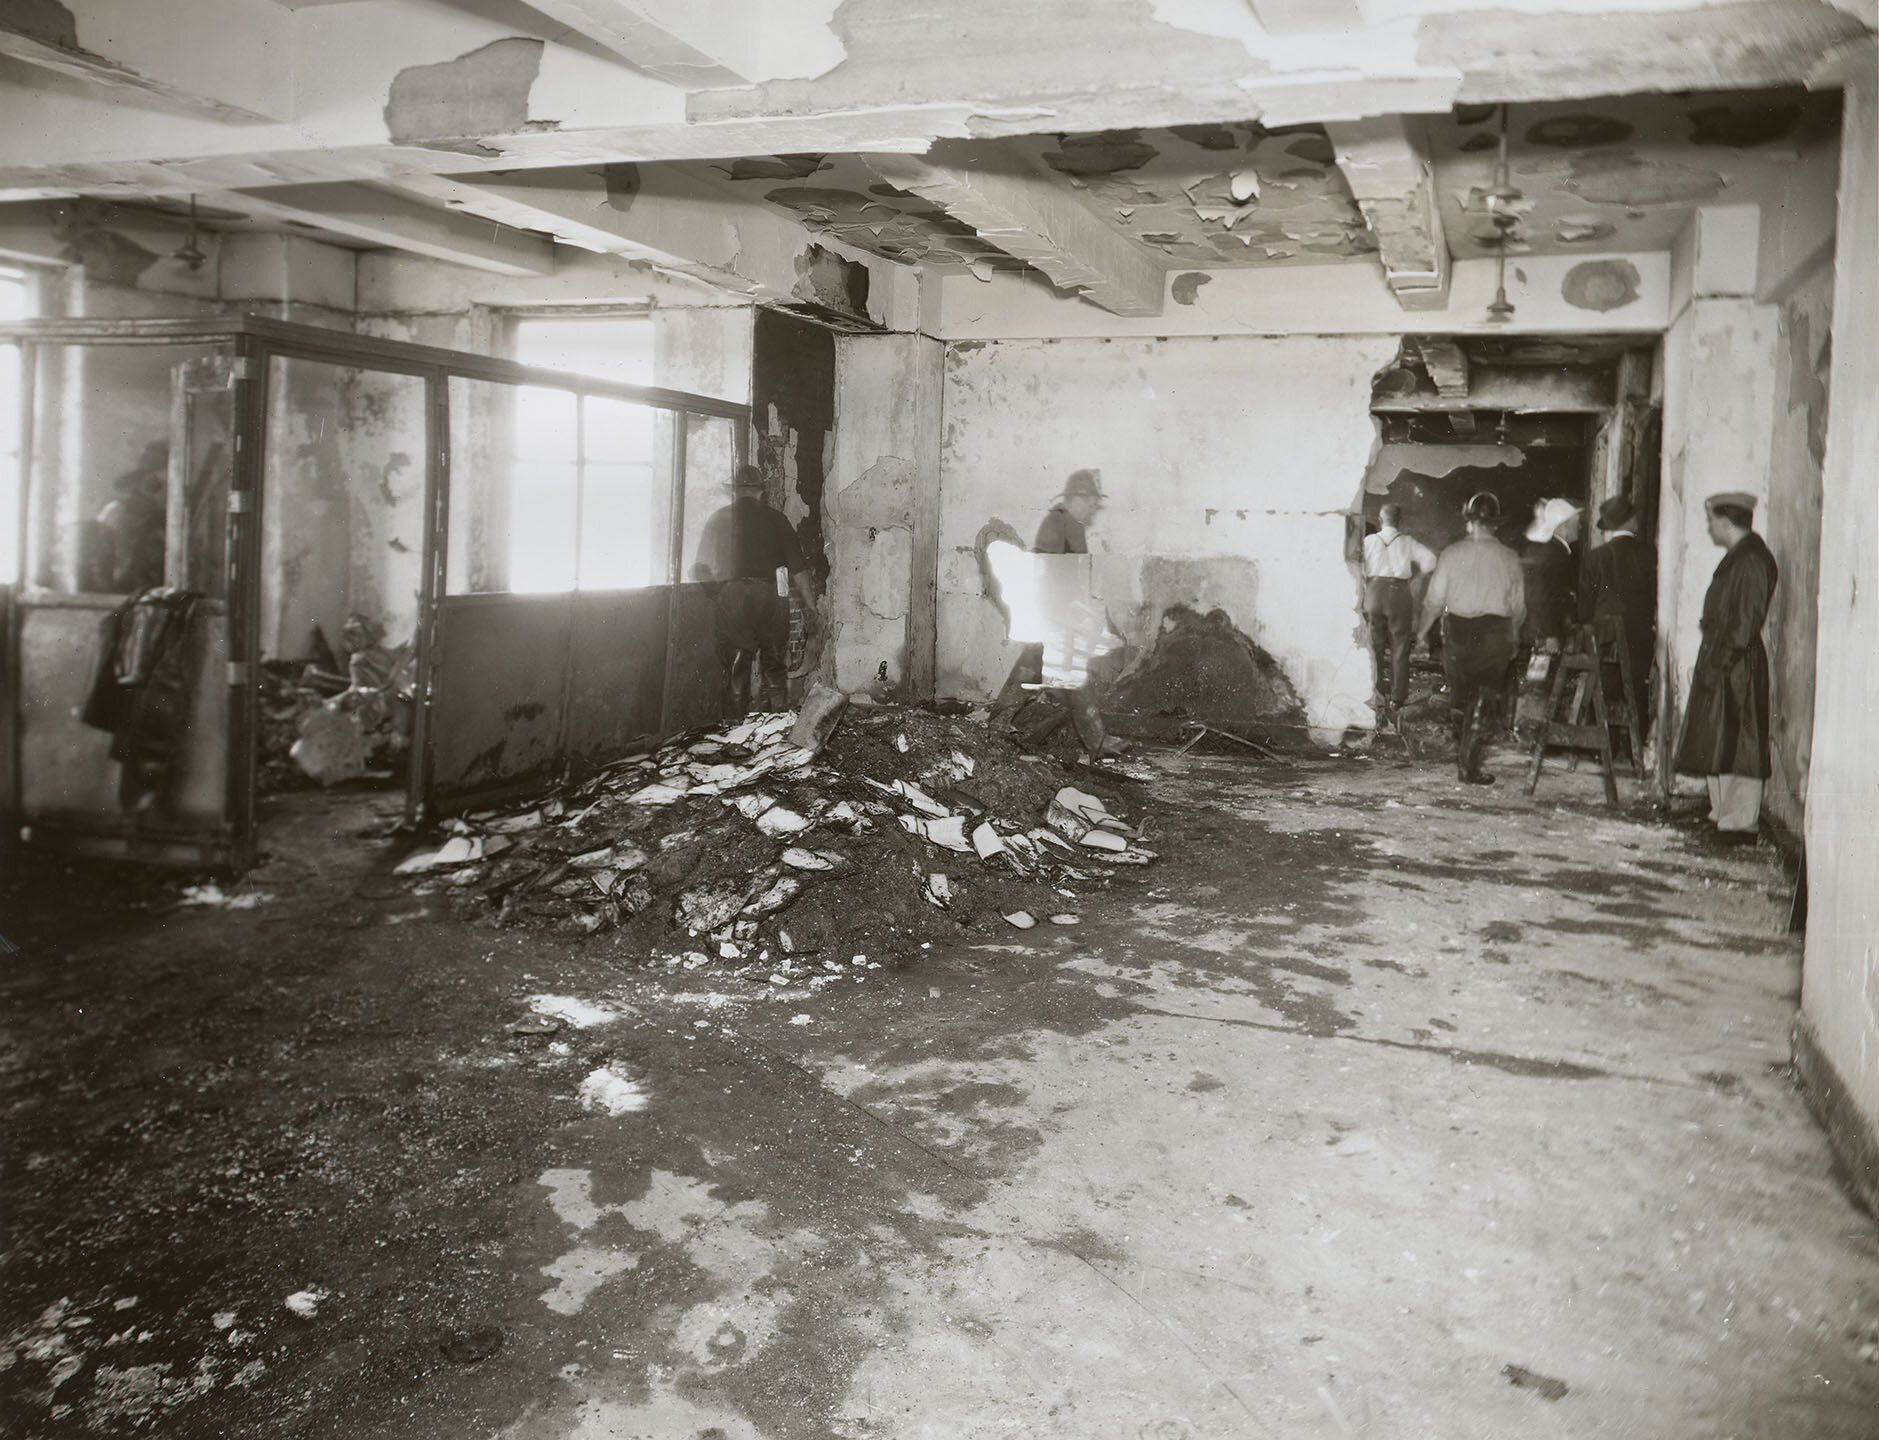 Empire State Building Disaster: Interior, W side of 79th Fl, facing E; 12:30 pm, July 28, 1945. Firemen walking through rubble in rear. Mayor LaGuardia Collection, NYC Municipal Archives.